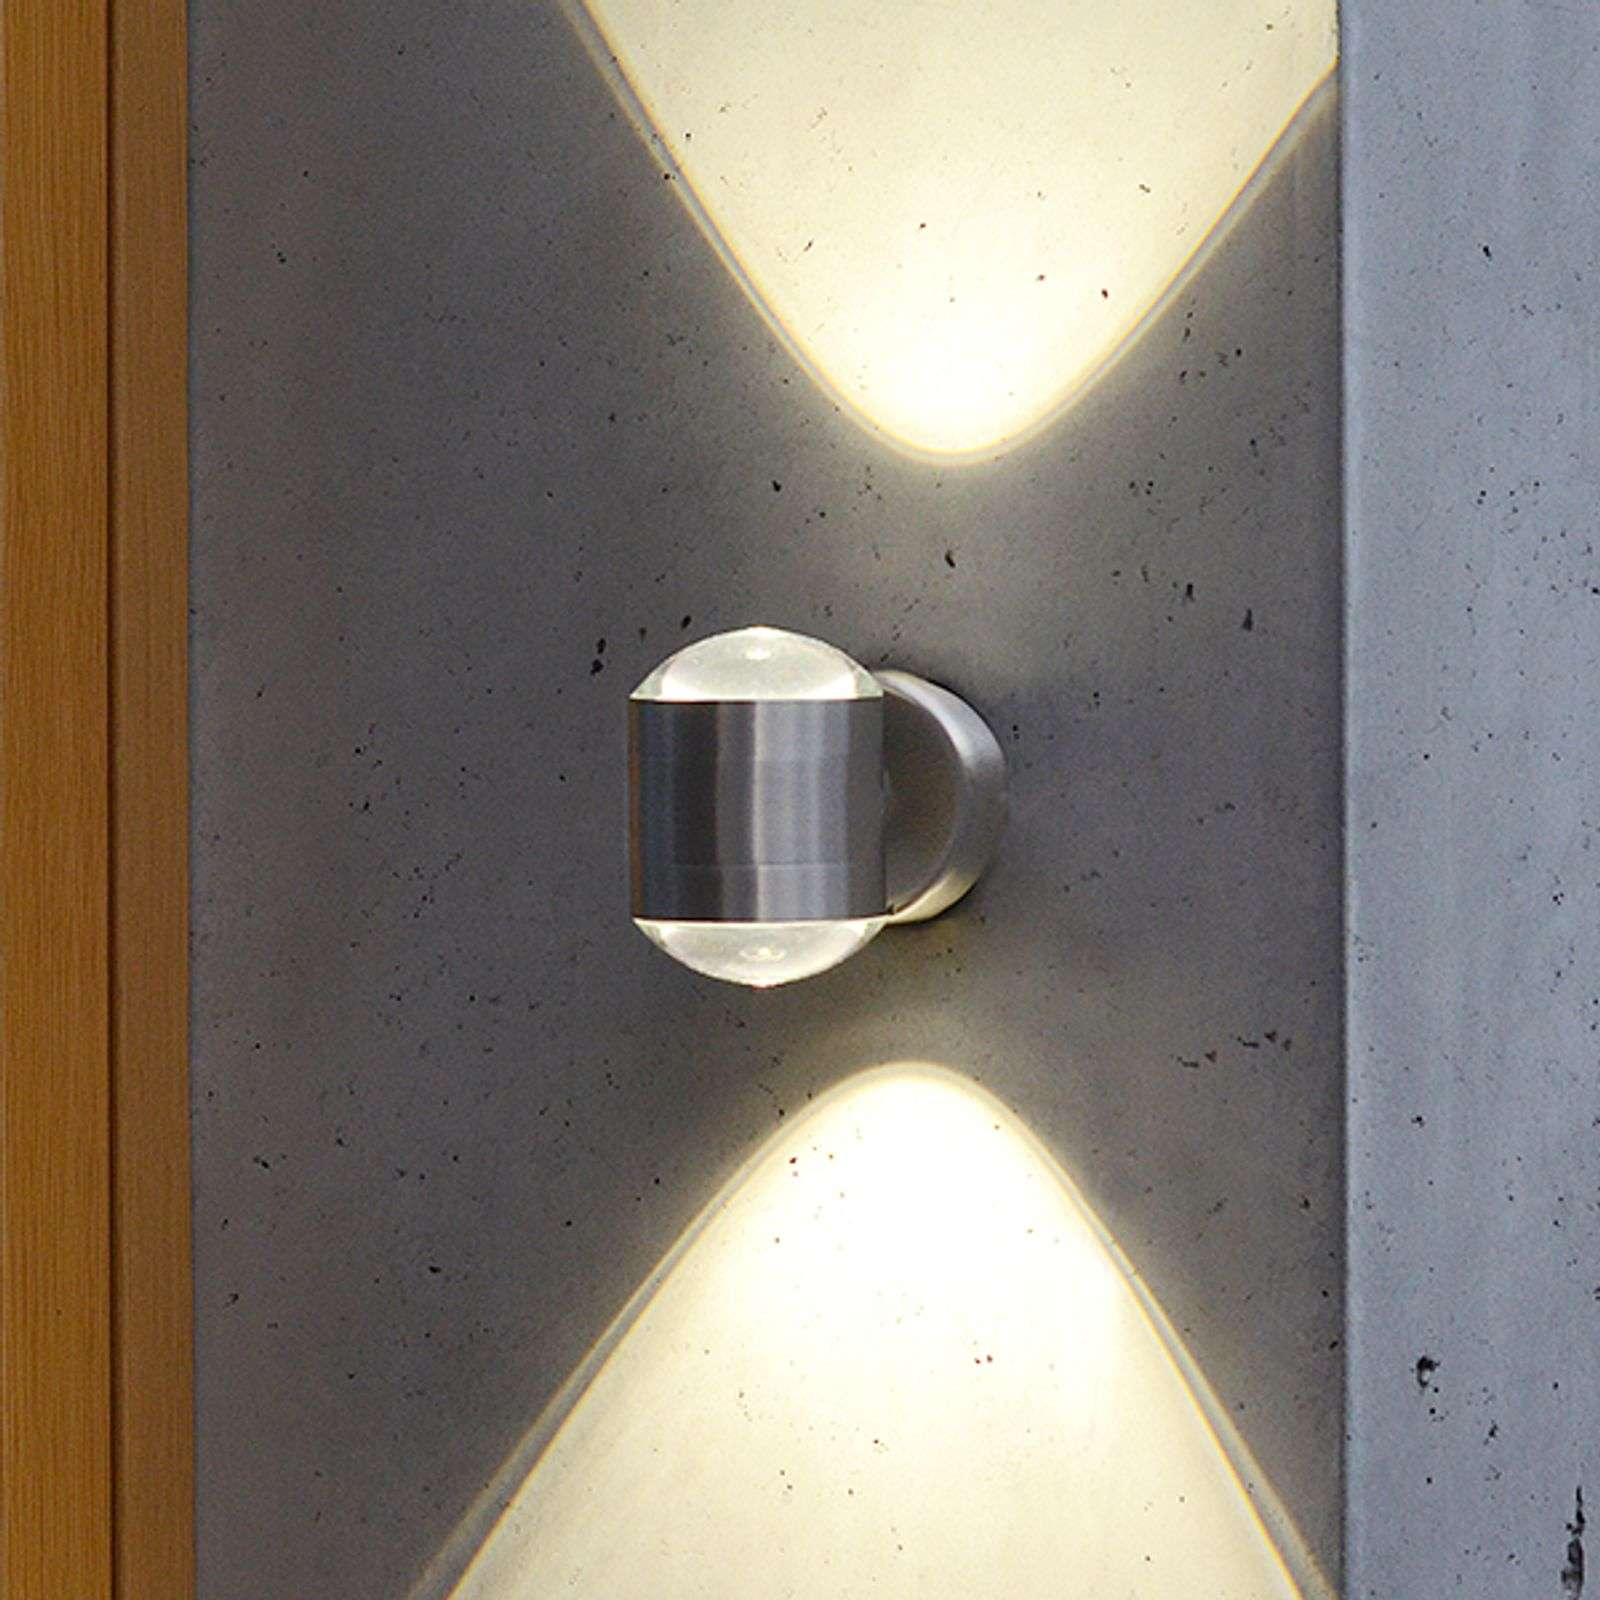 Aplique genuino de pared exterior LED Cristal